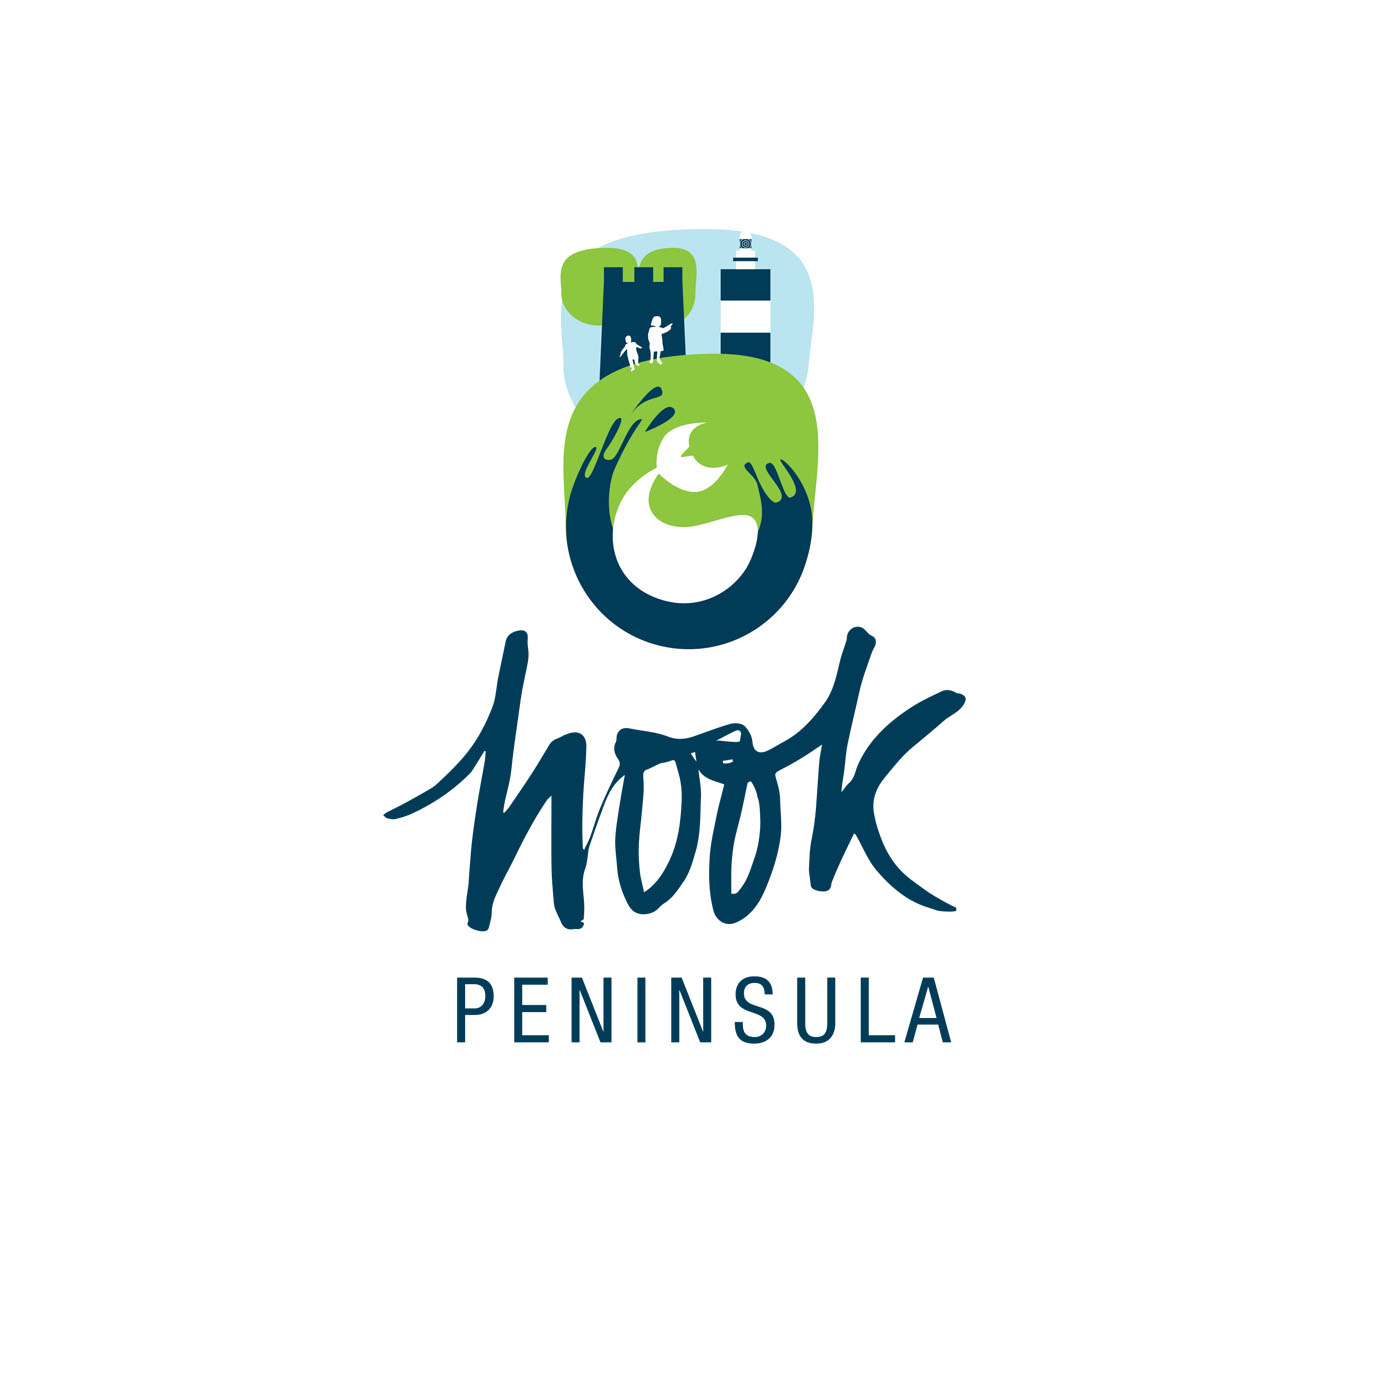 Hook Peninsula : logo design and tourist map